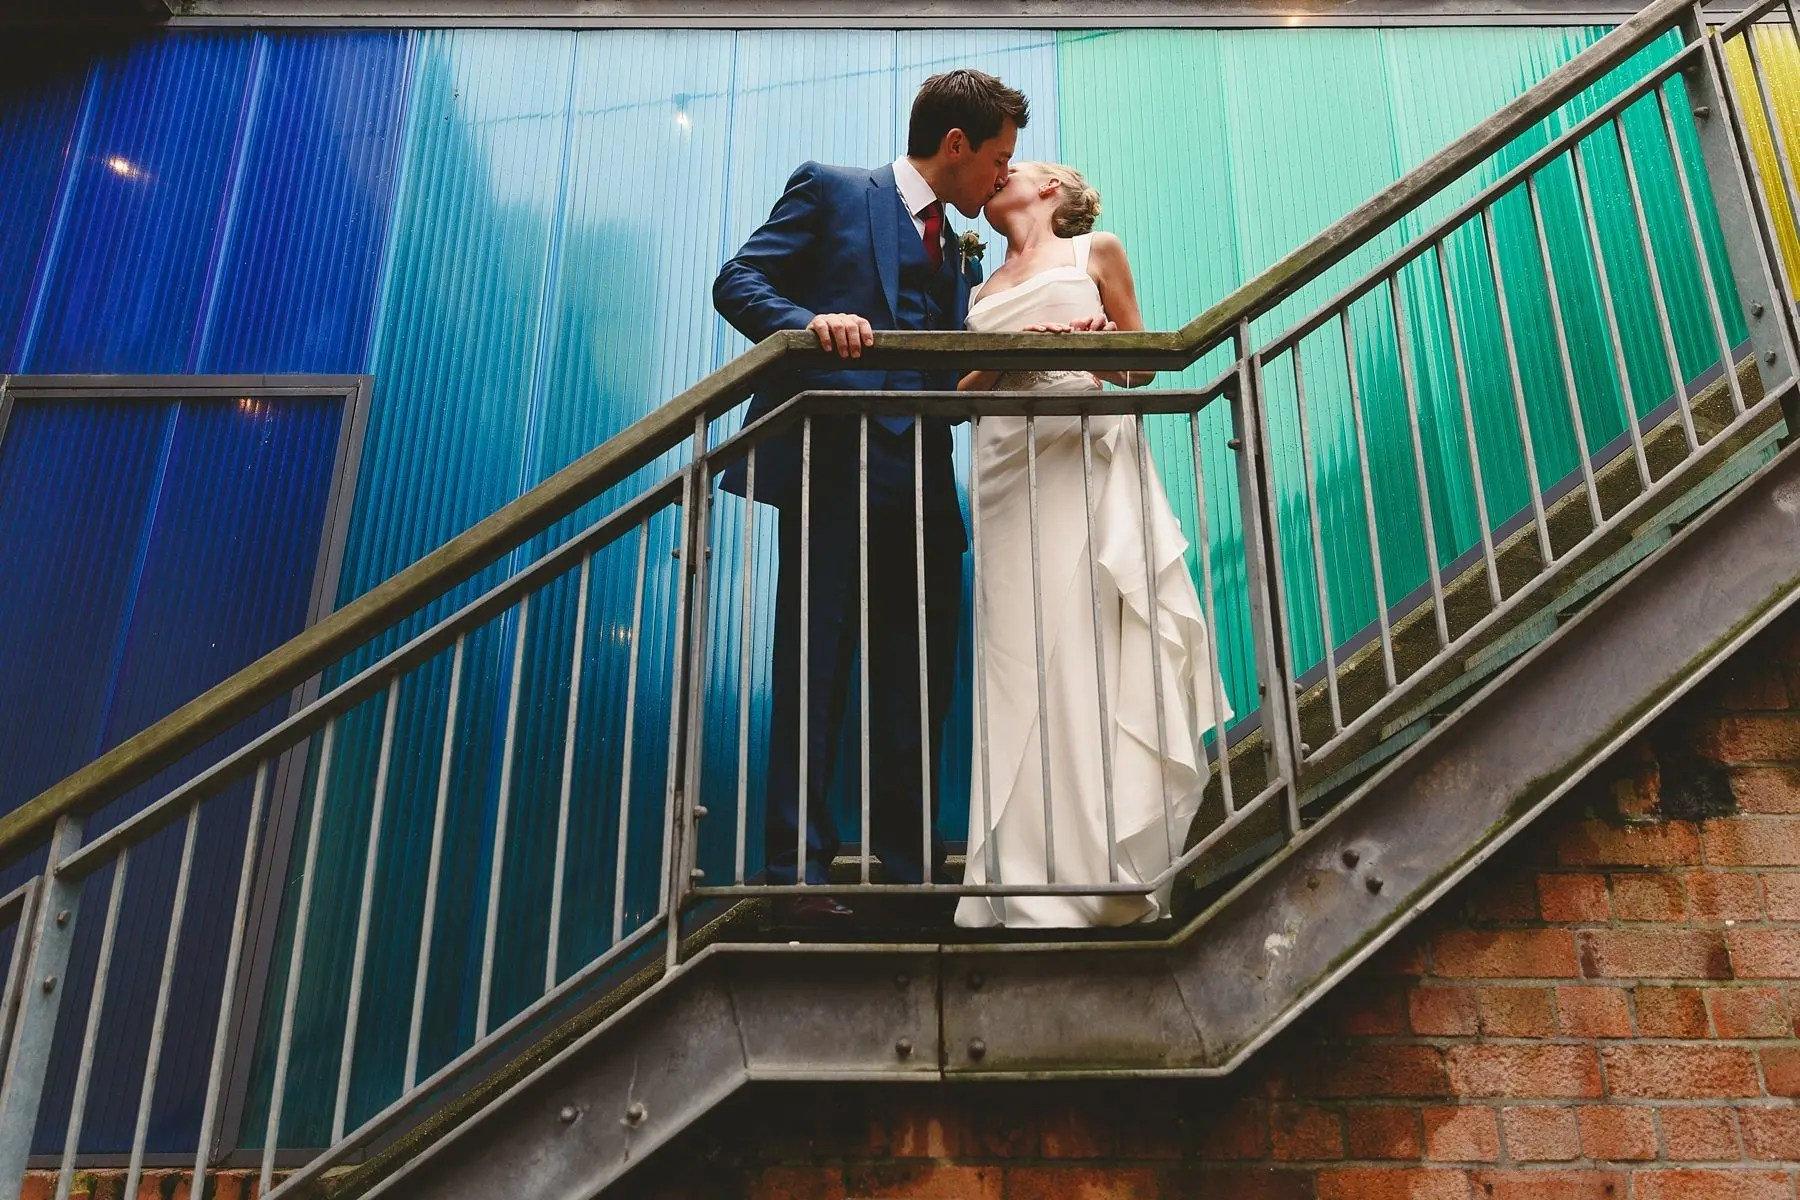 wedding-at-paintworks-featured-image-01